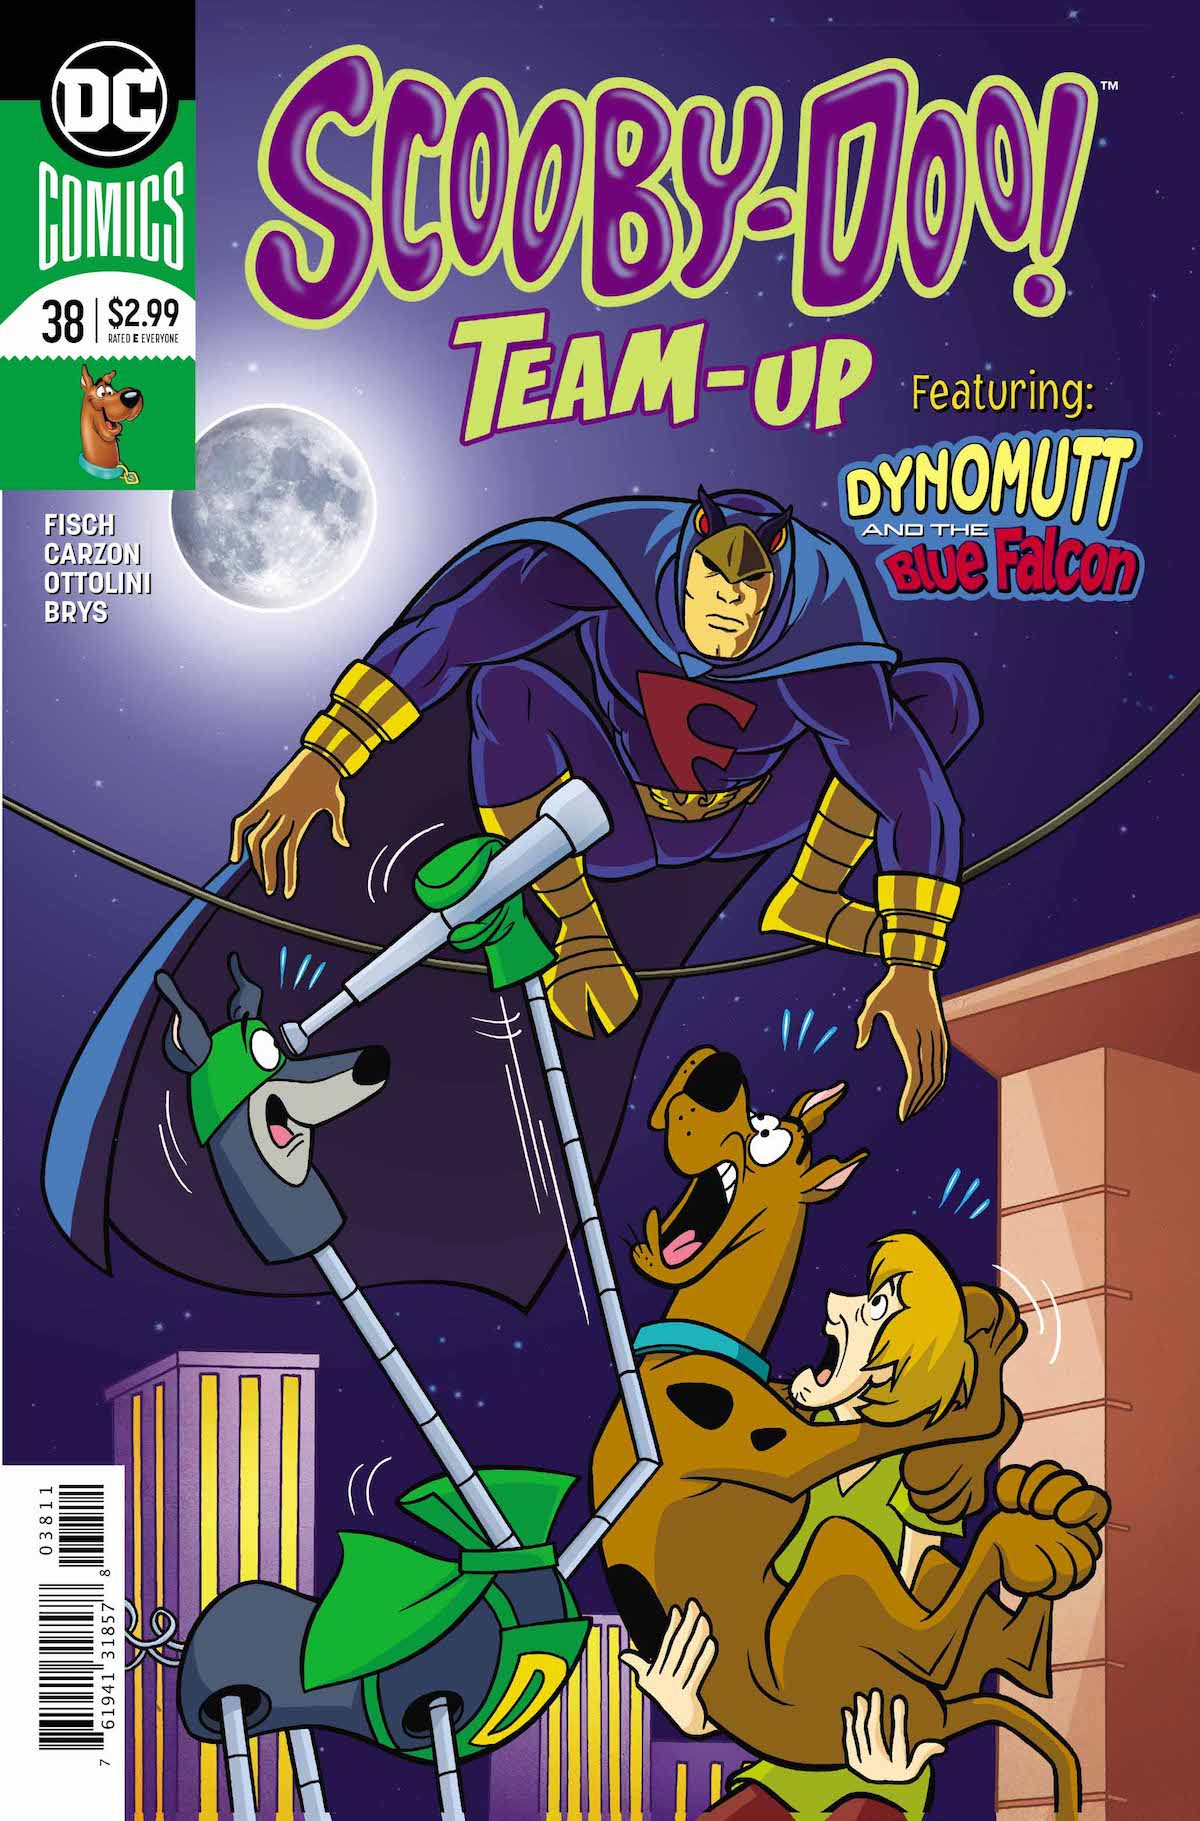 Scooby Doo Team Up #38 cover